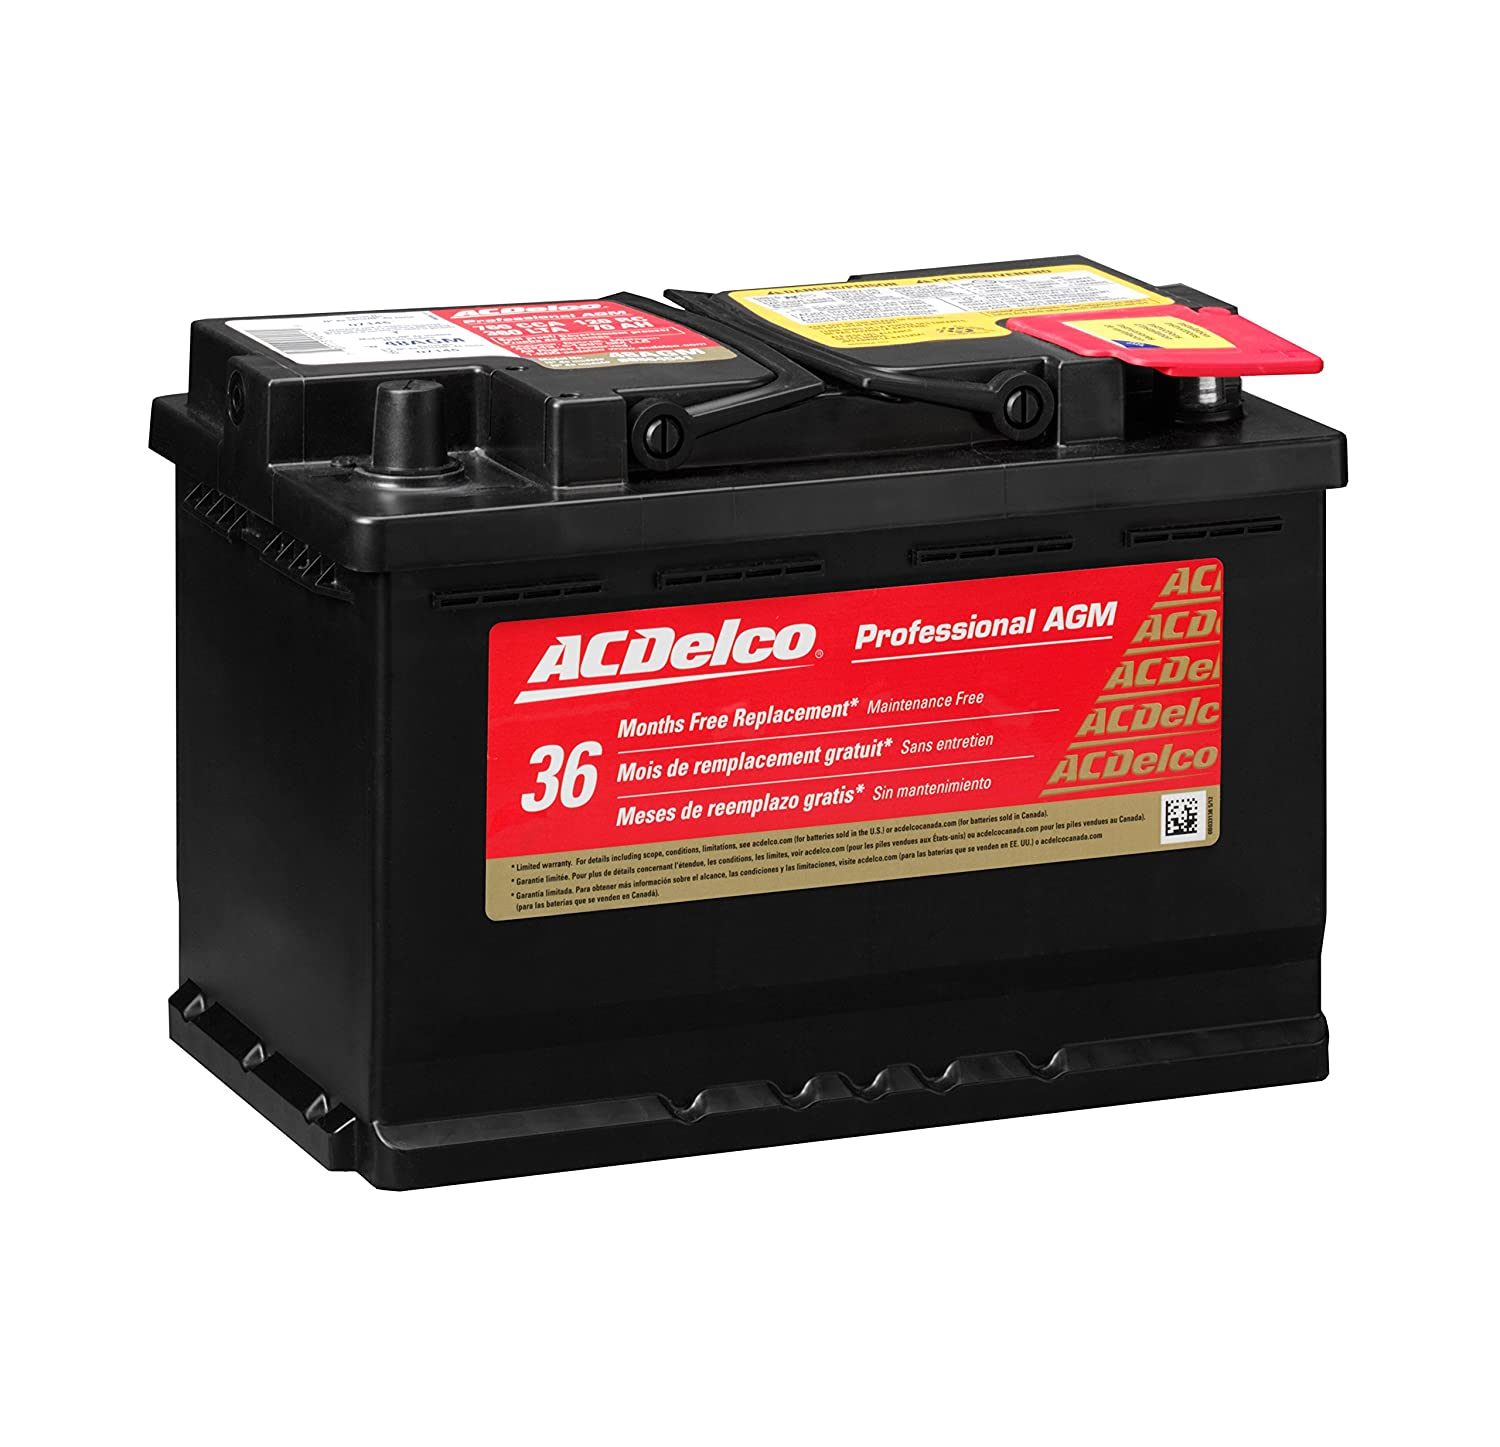 Ac Delco Battery >> Amazon Com Acdelco 48agm Professional Agm Automotive Bci Group 48